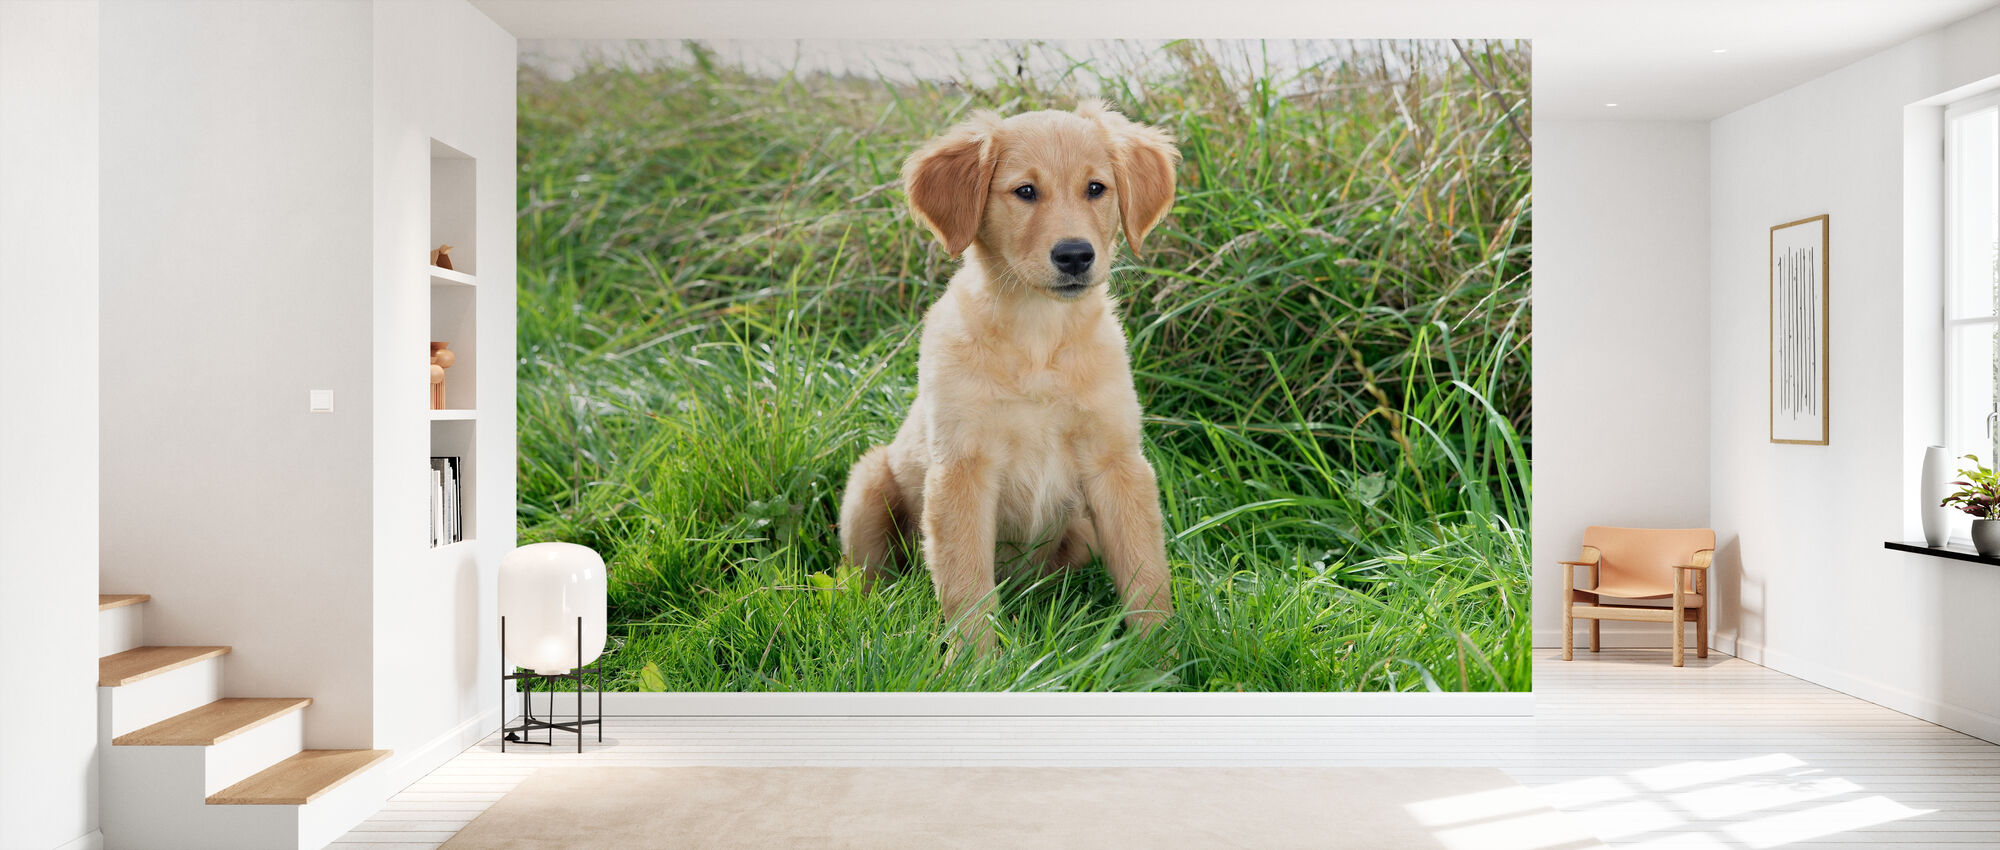 Golden Retriever Puppy in Meadow - Wallpaper - Hallway